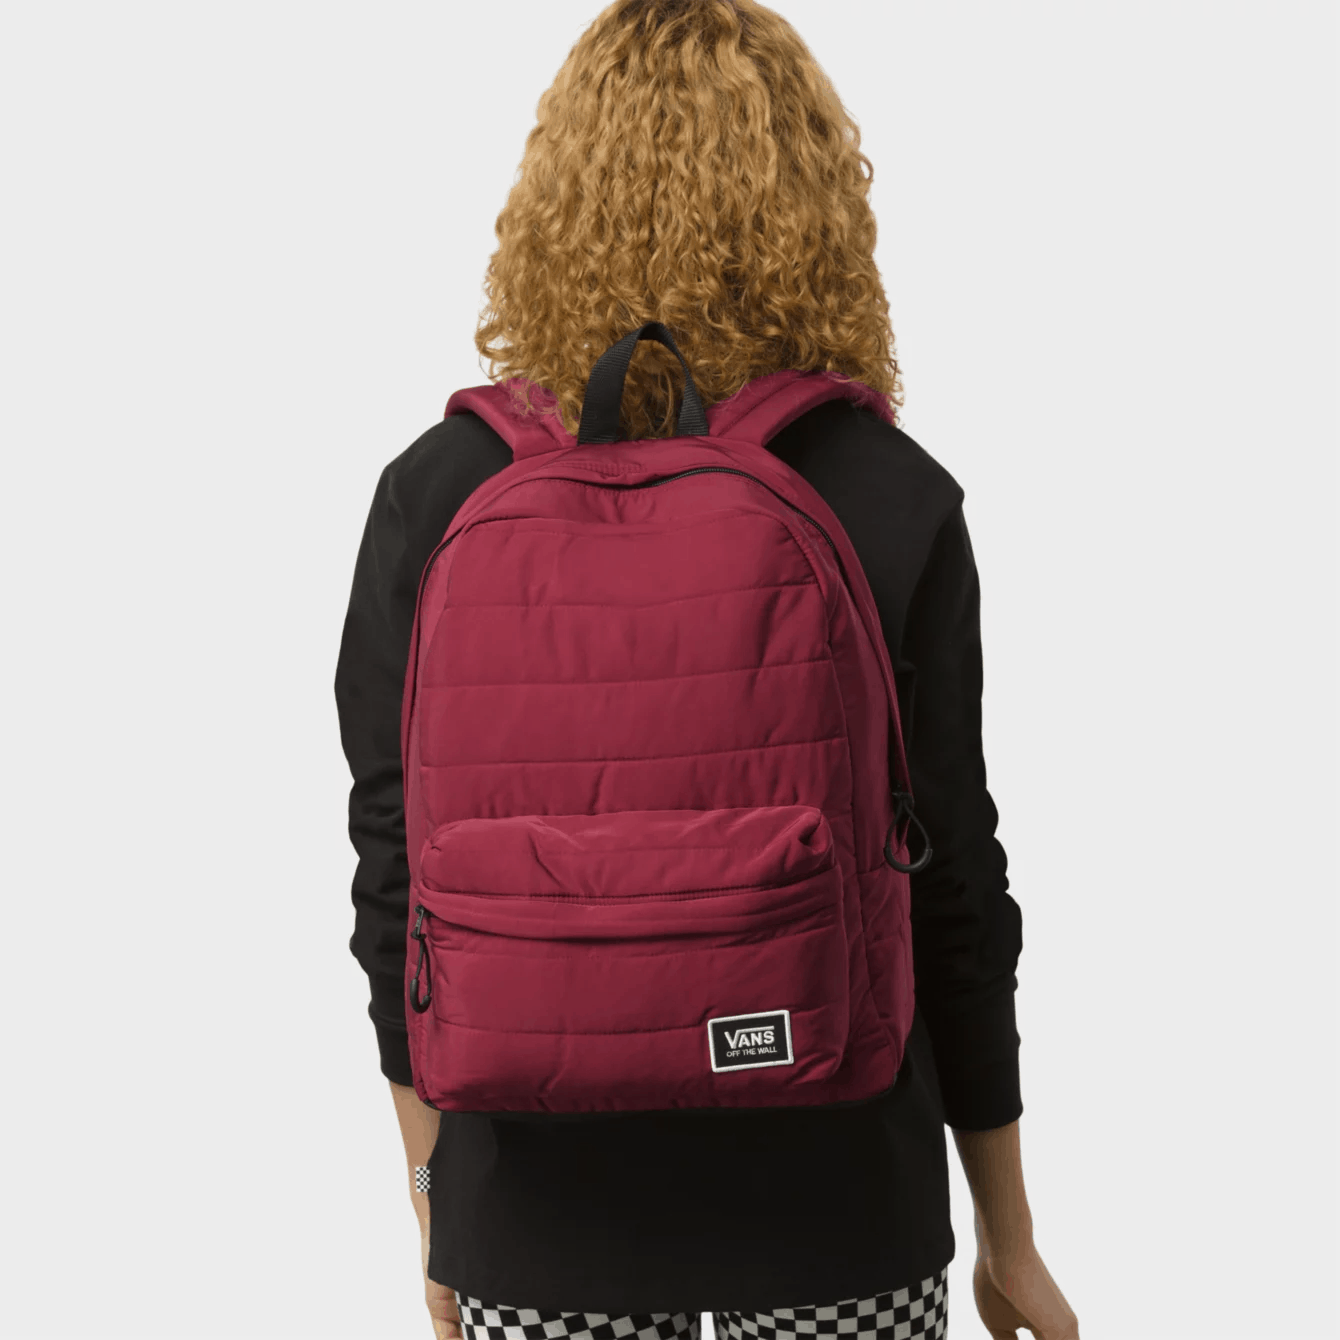 Puffed Up Backpack | Shop Womens Backpacks At Vans